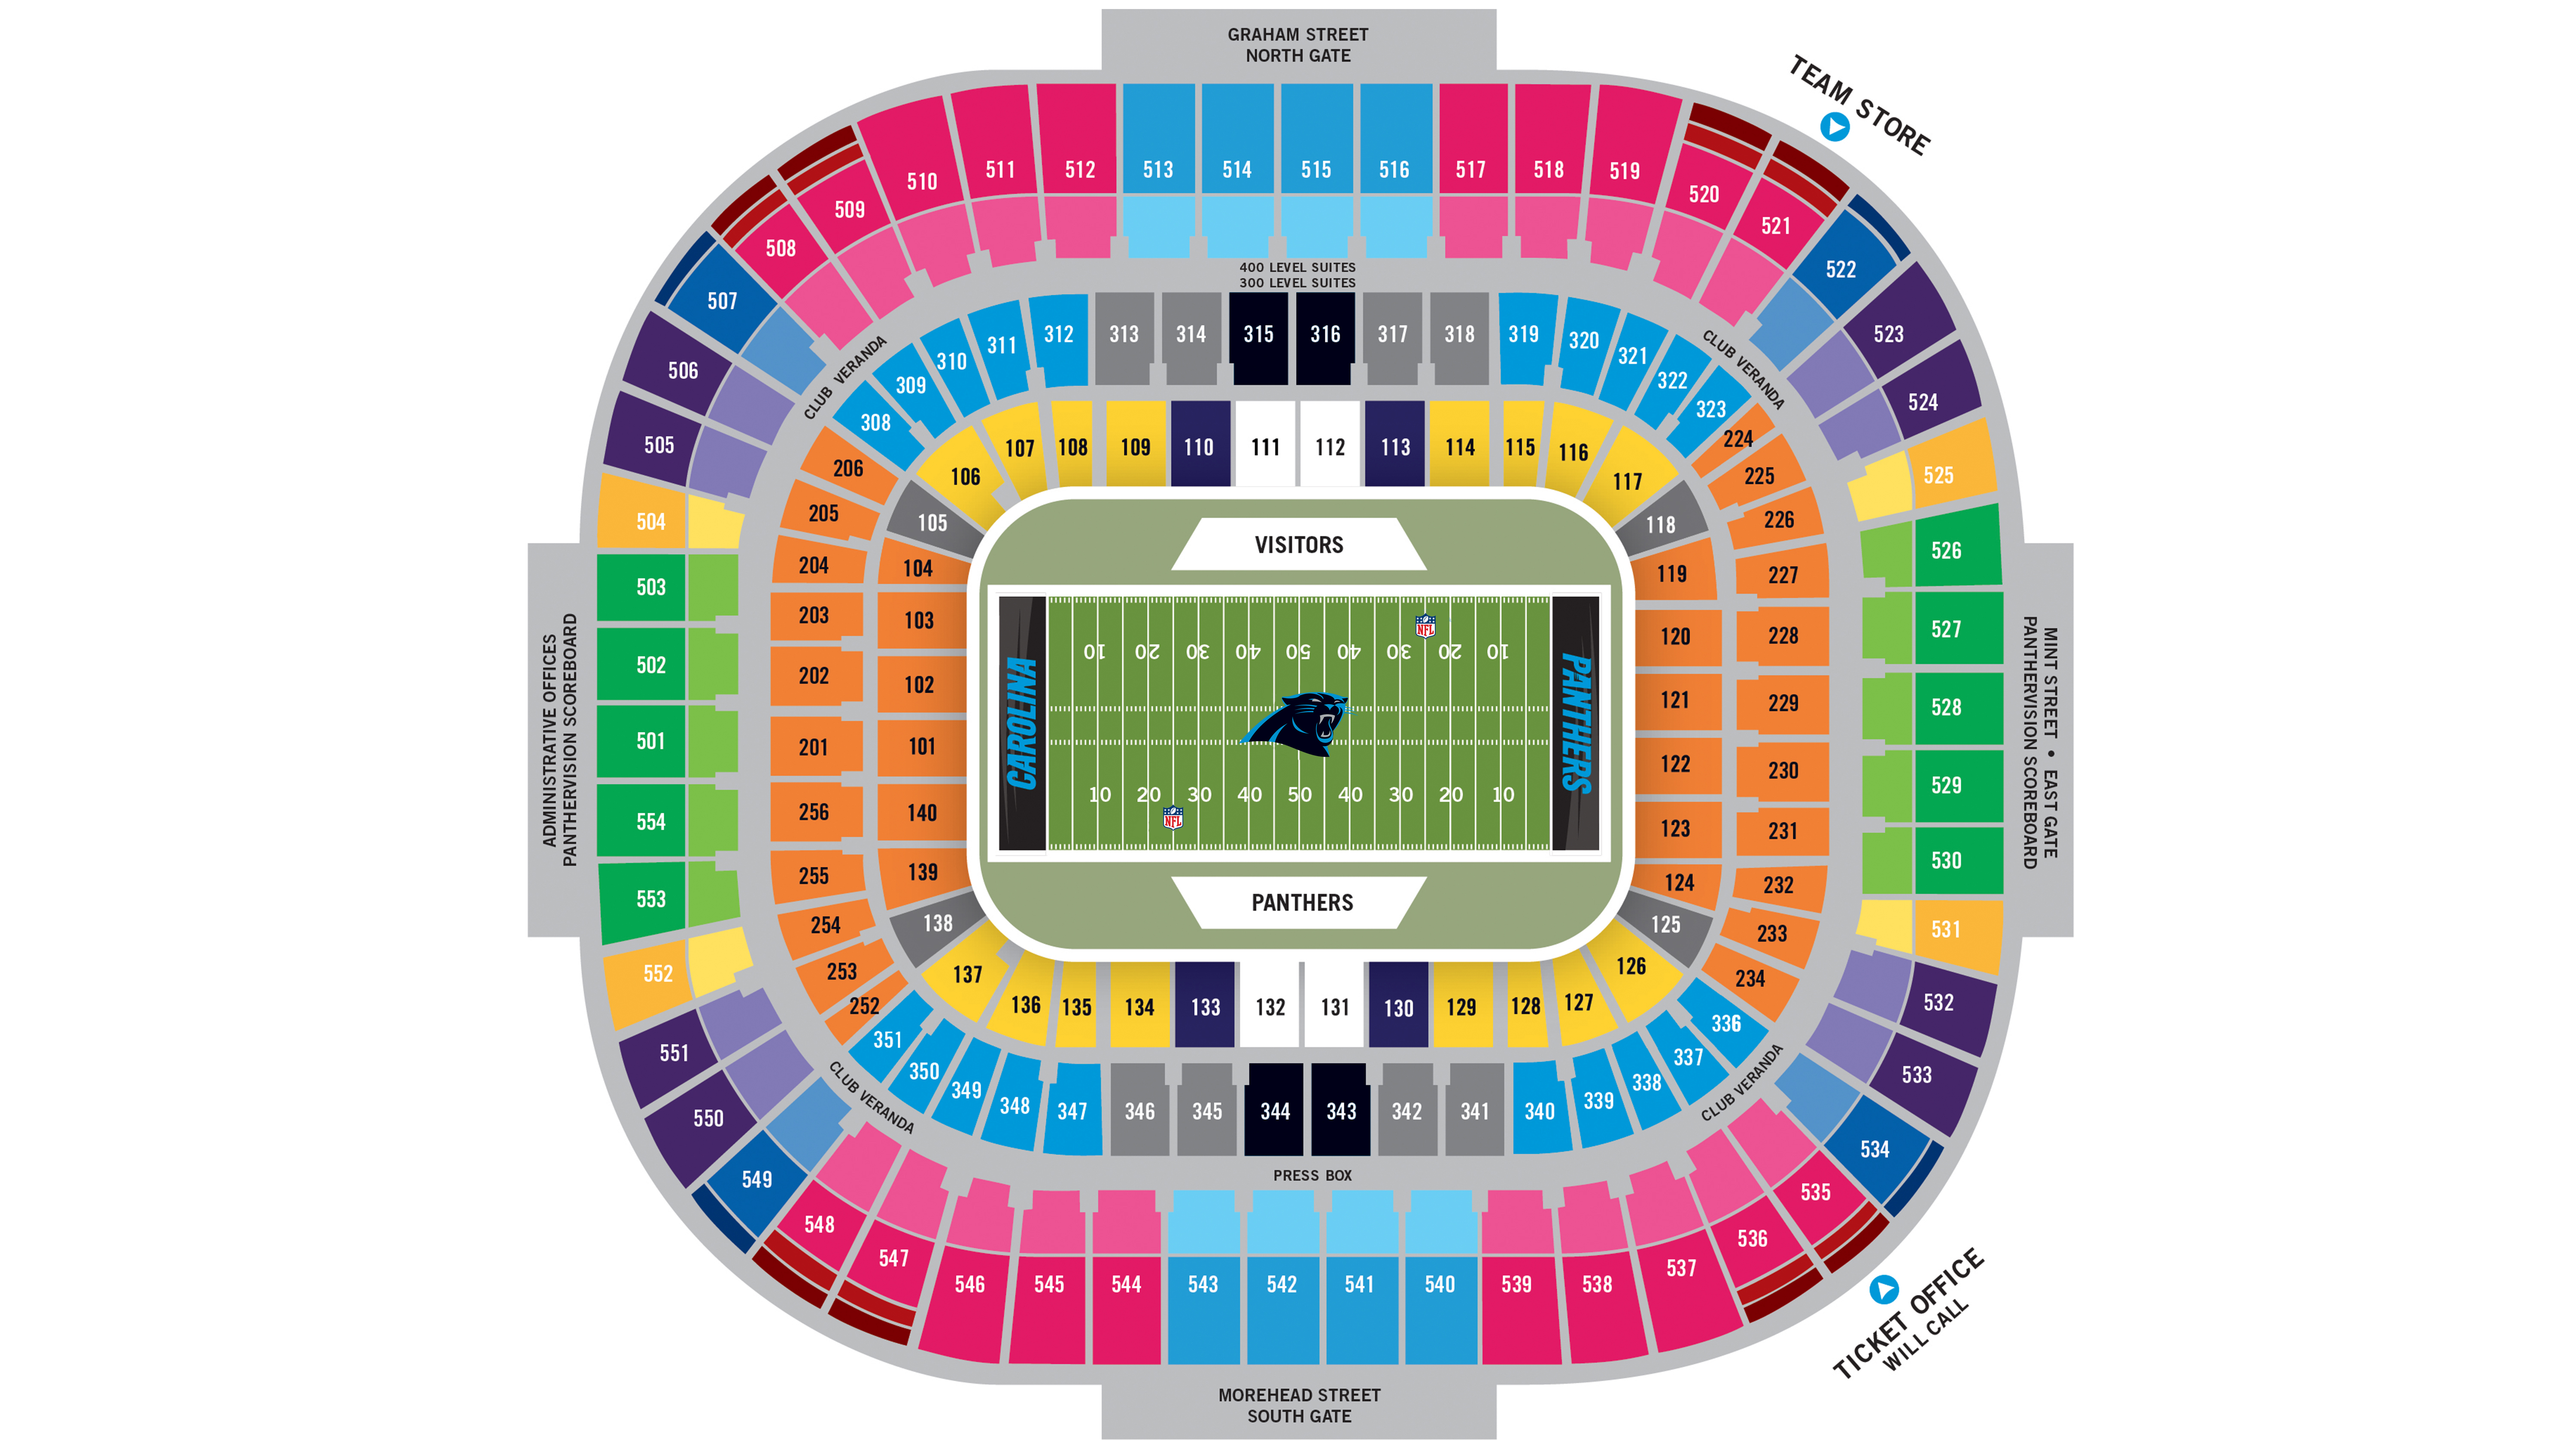 fhkduoqdkpn1f4js8qqw the official site of the carolina panthers